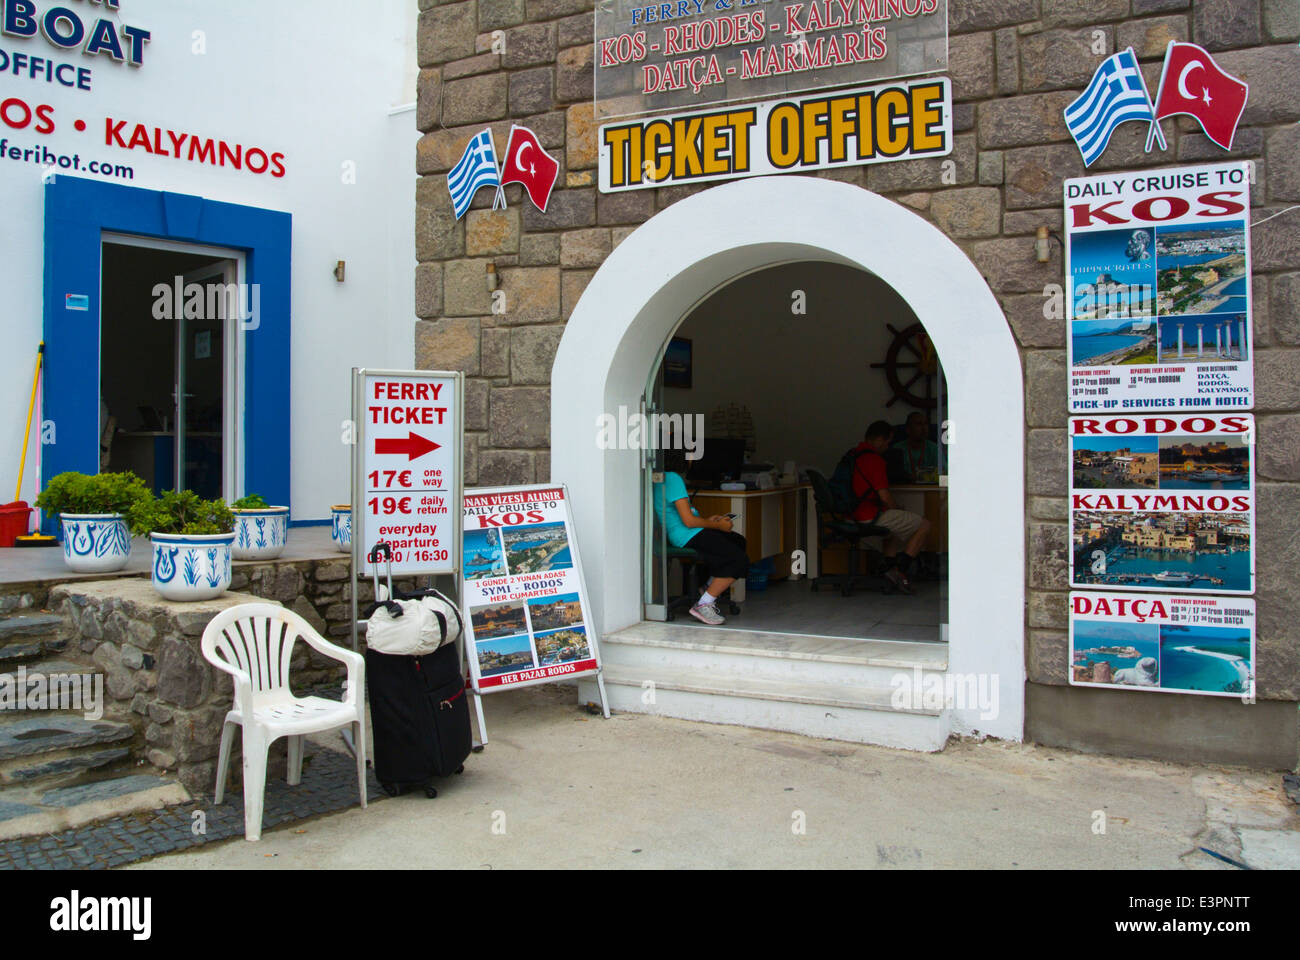 Office for ferry tickets to Kos and other Greek islands, the passenger port, Bodrum, Turkey, Asia Minor - Stock Image